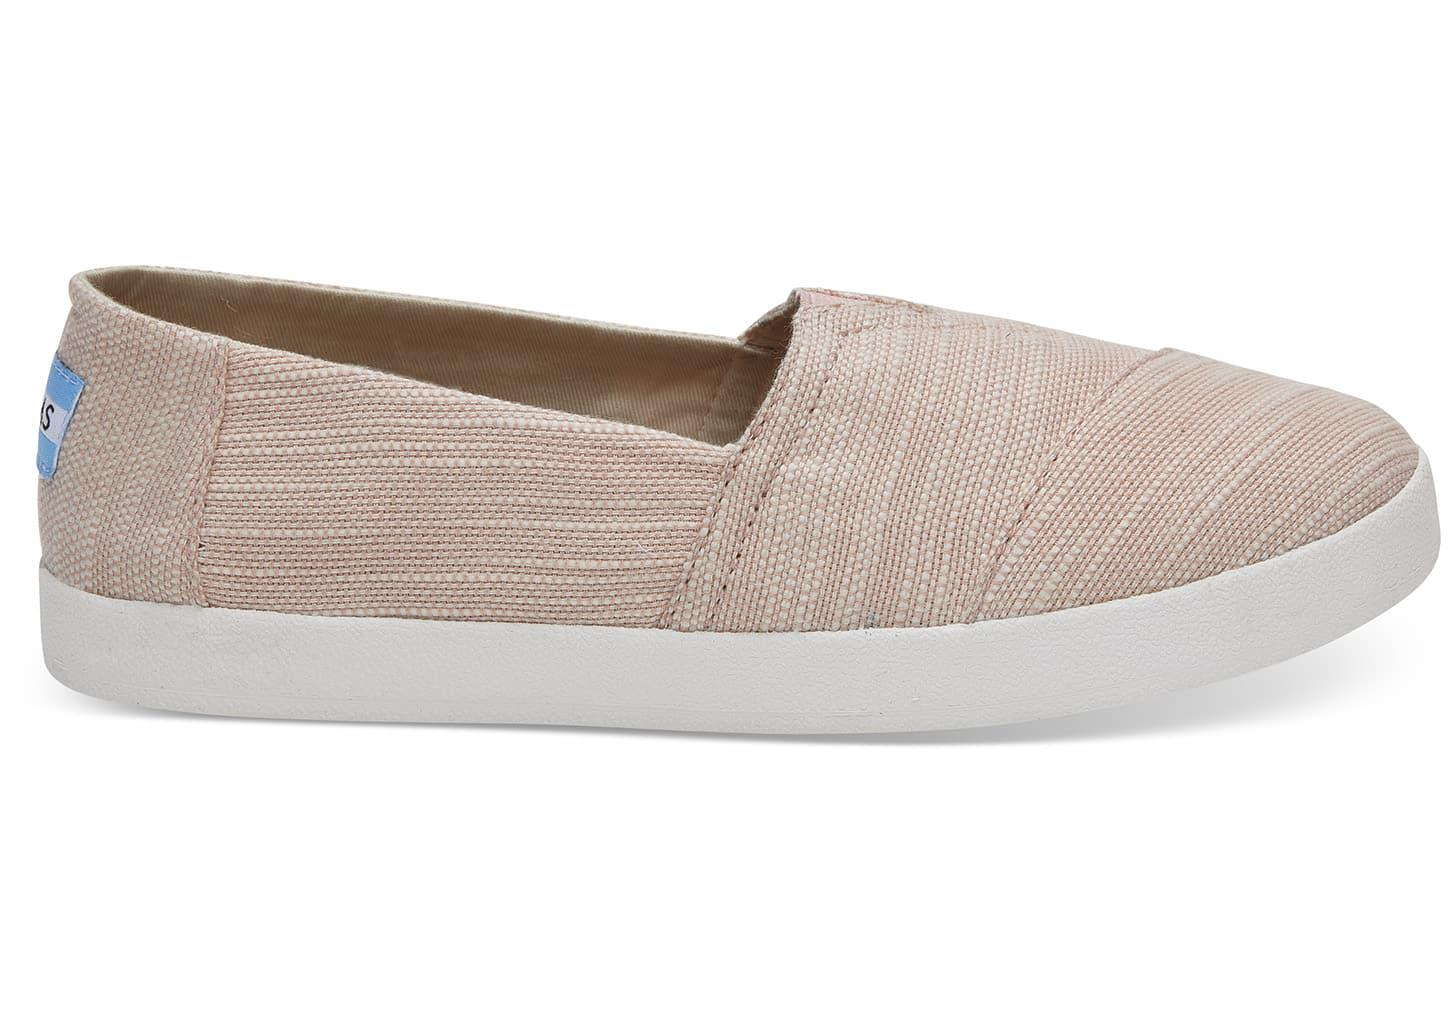 TOMS Women's Avalon Slubby Cotton Flats qFByp6rT